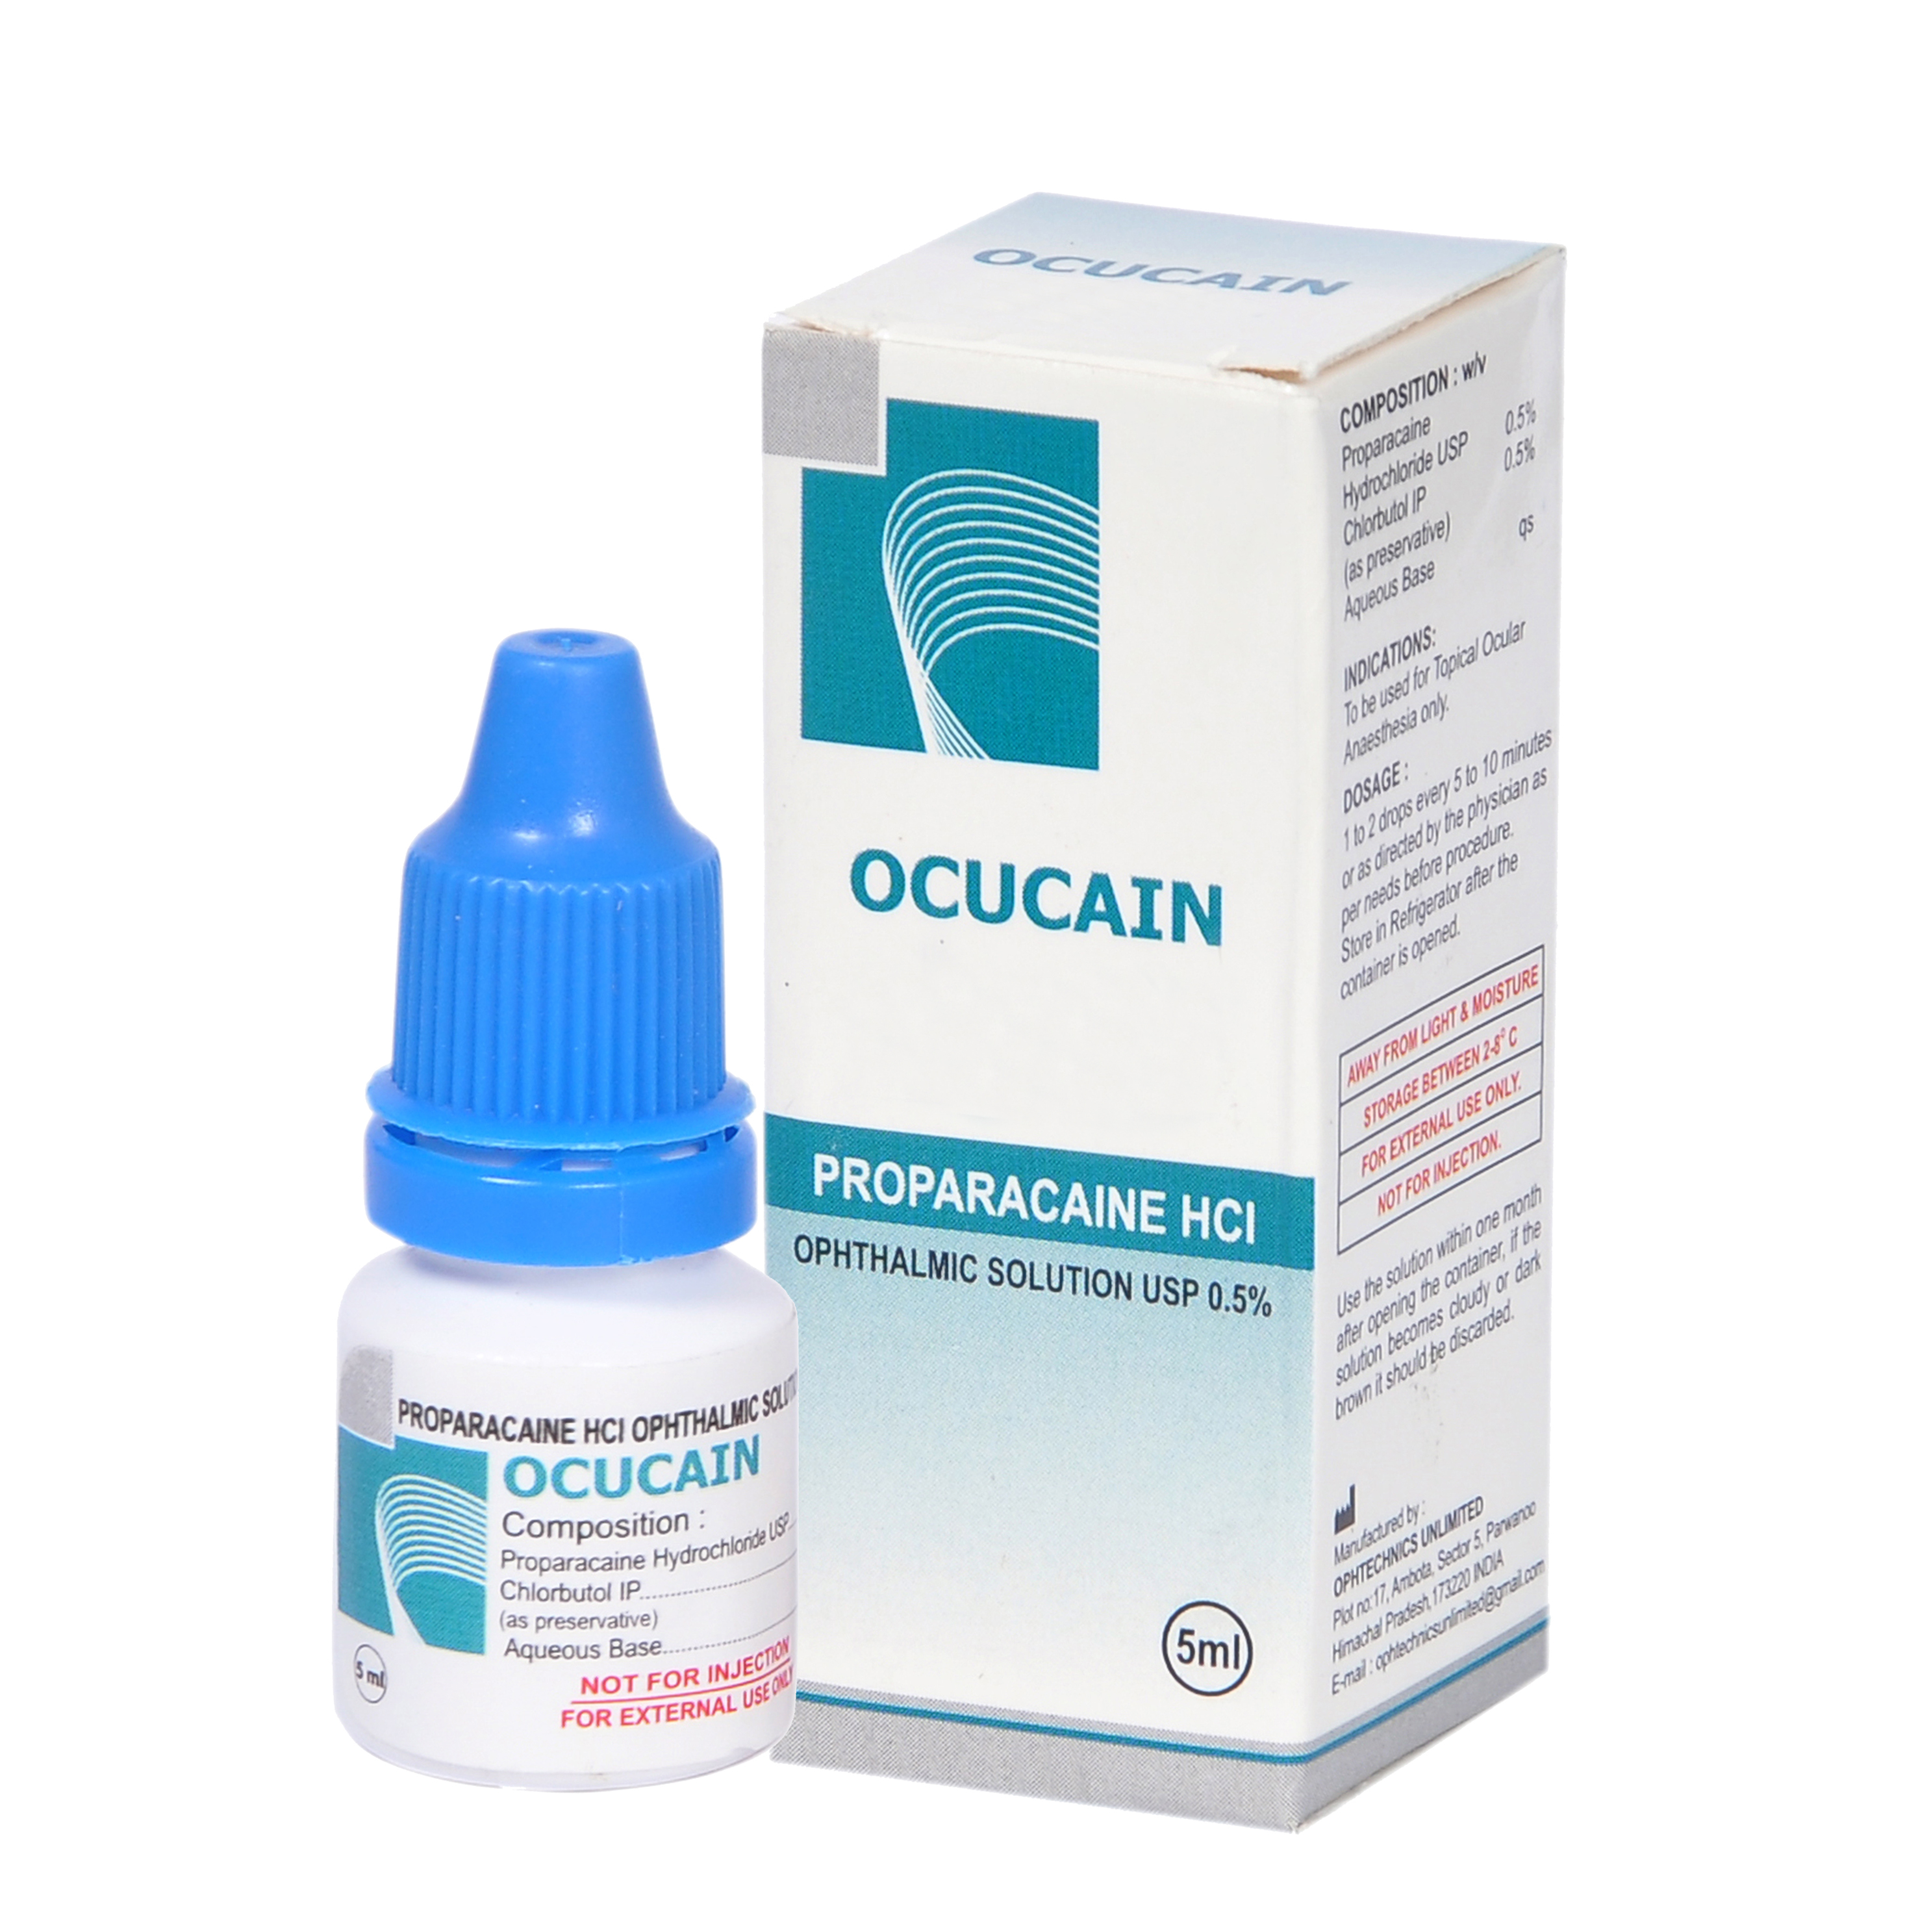 Proparacain Hcl Ophthalmic Solution